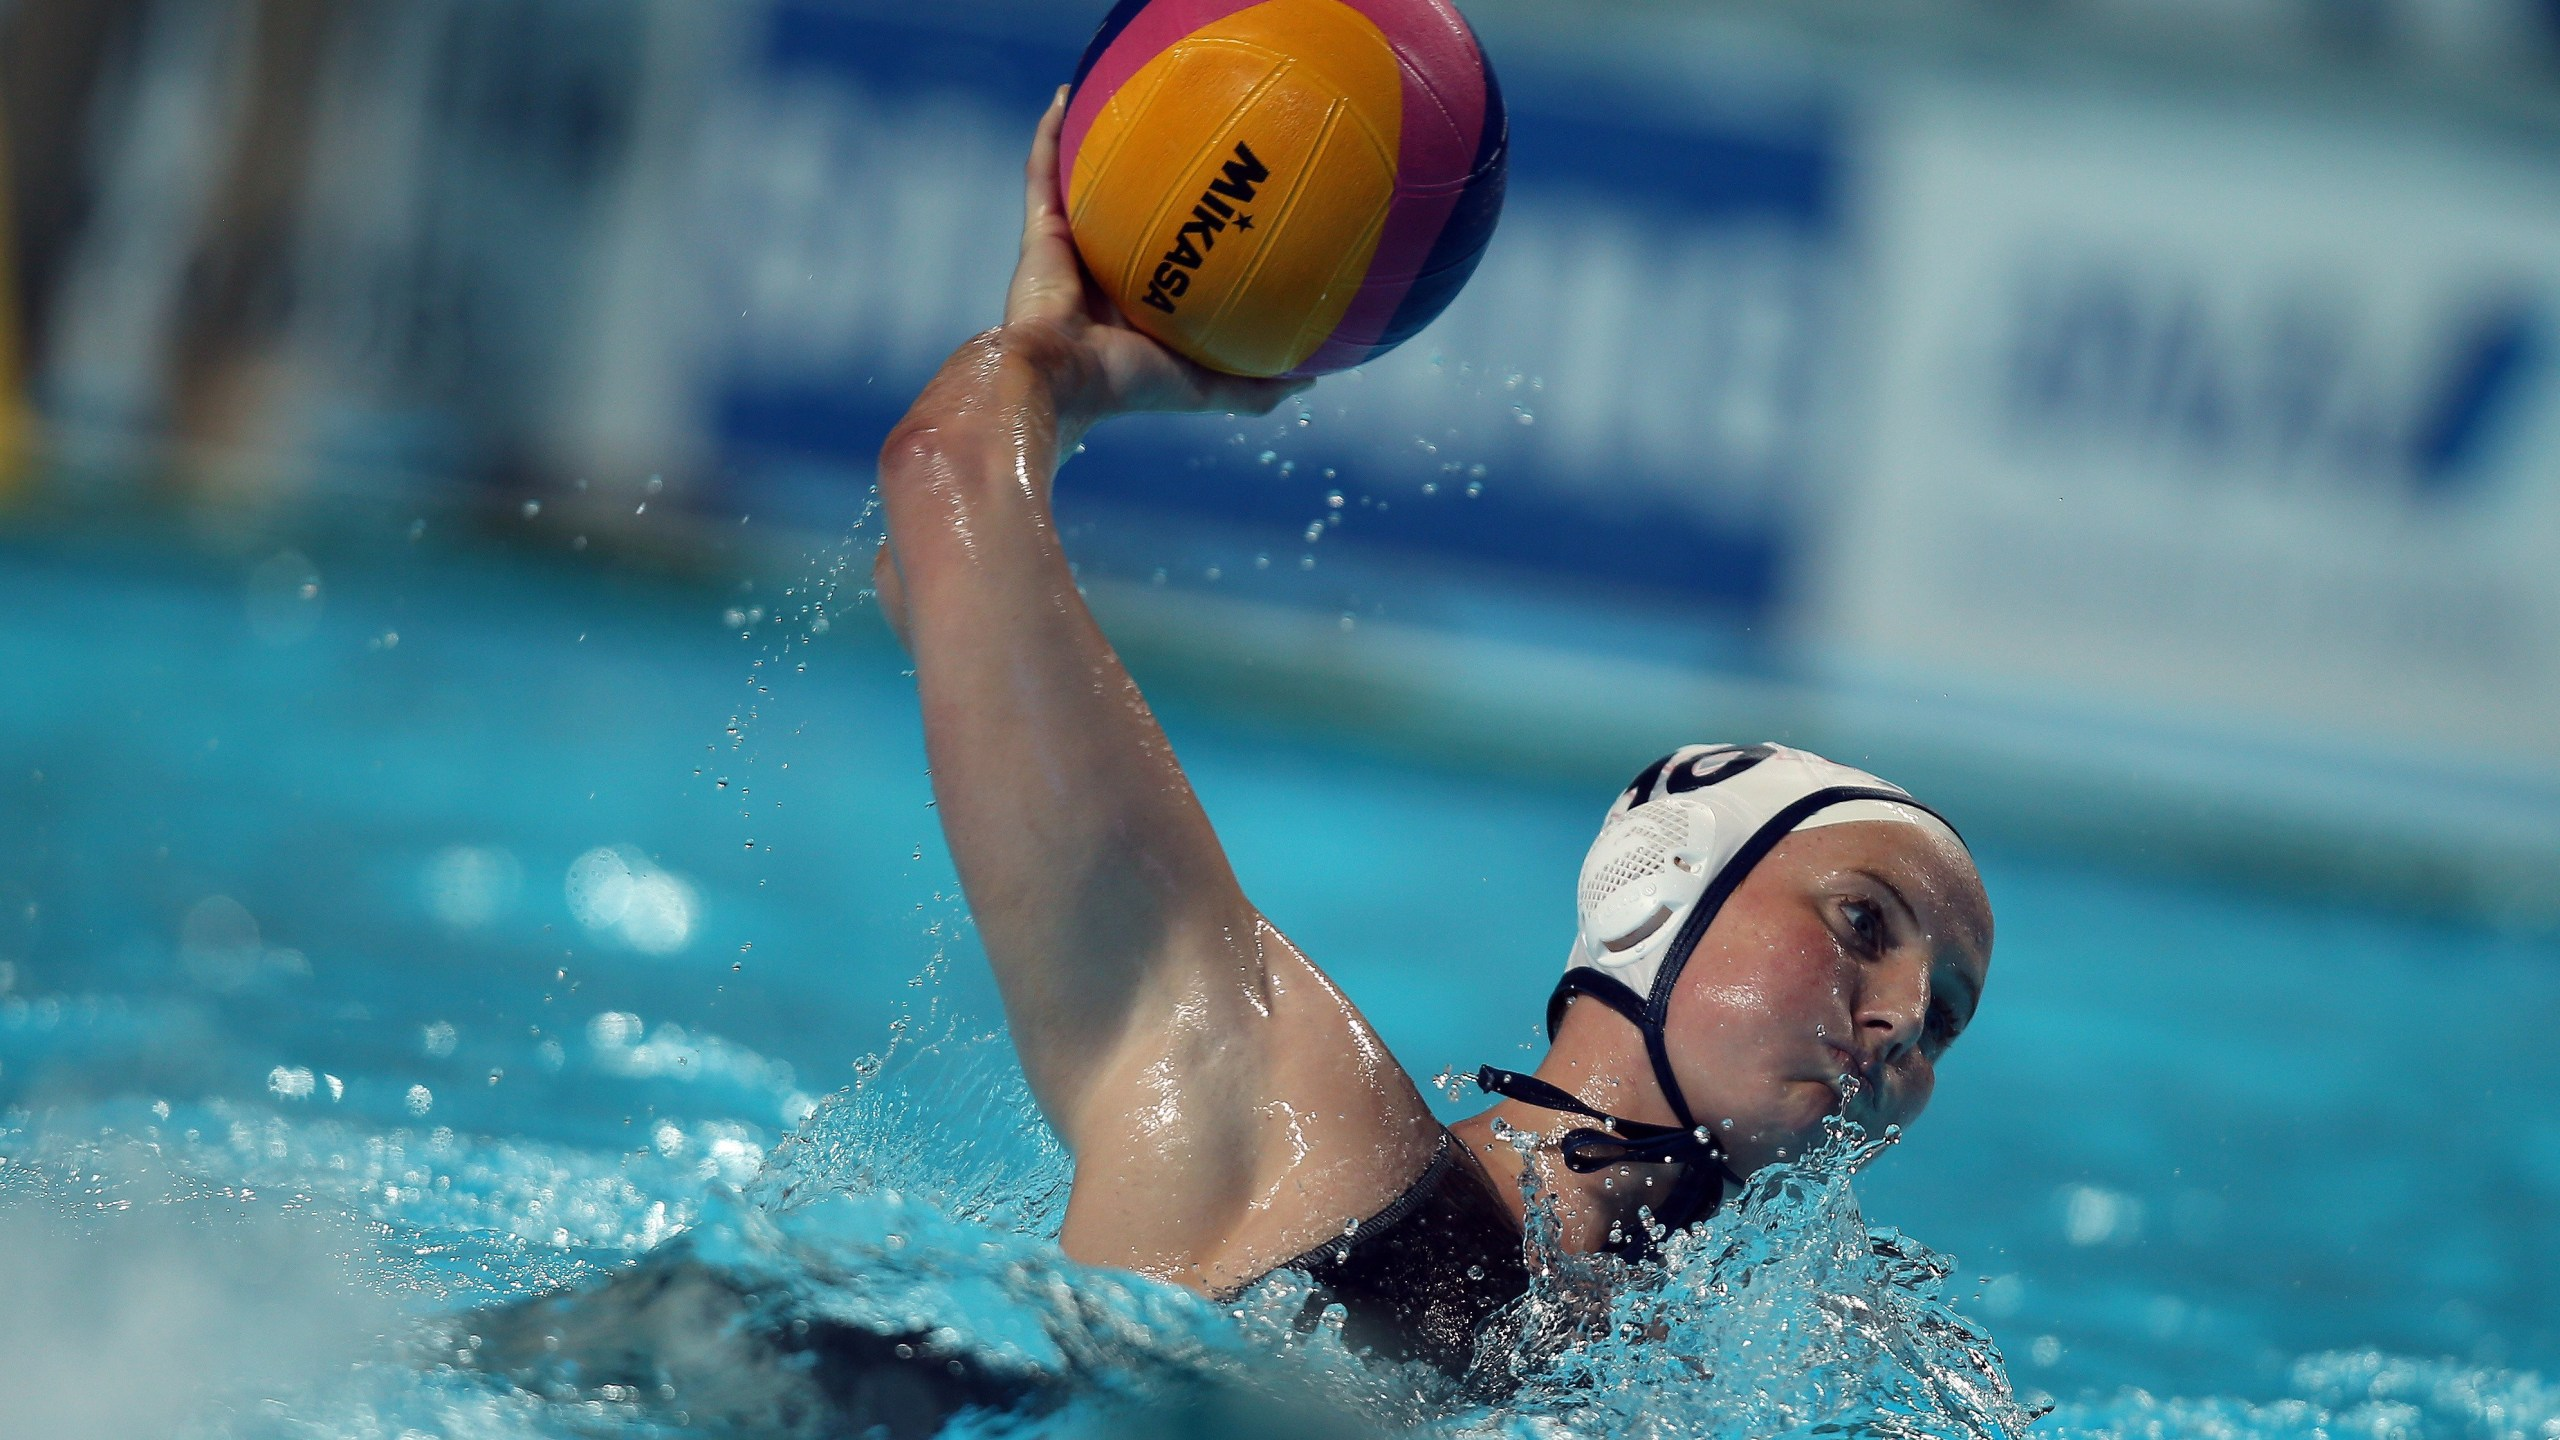 Kaleigh Gilchrist plays the ball during the women's water polo semi-final match USA vs Australia at the 16th FINA World Championships on Aug. 5, 2015 in Kazan, Russia. (Credit: ROMAN KRUCHININ/AFP/Getty Images)